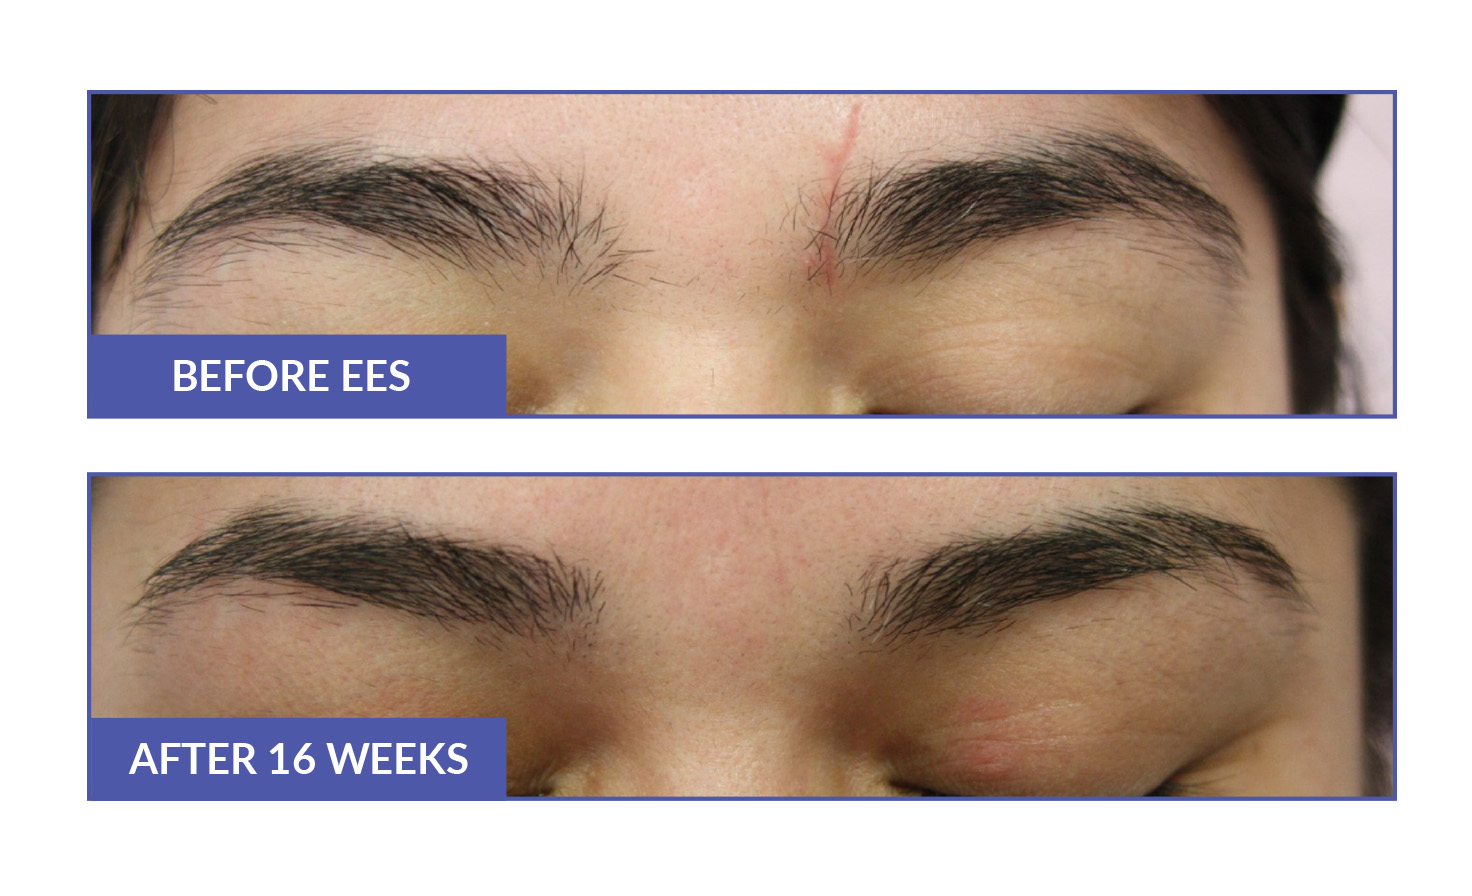 eyebrow hair growth with ees